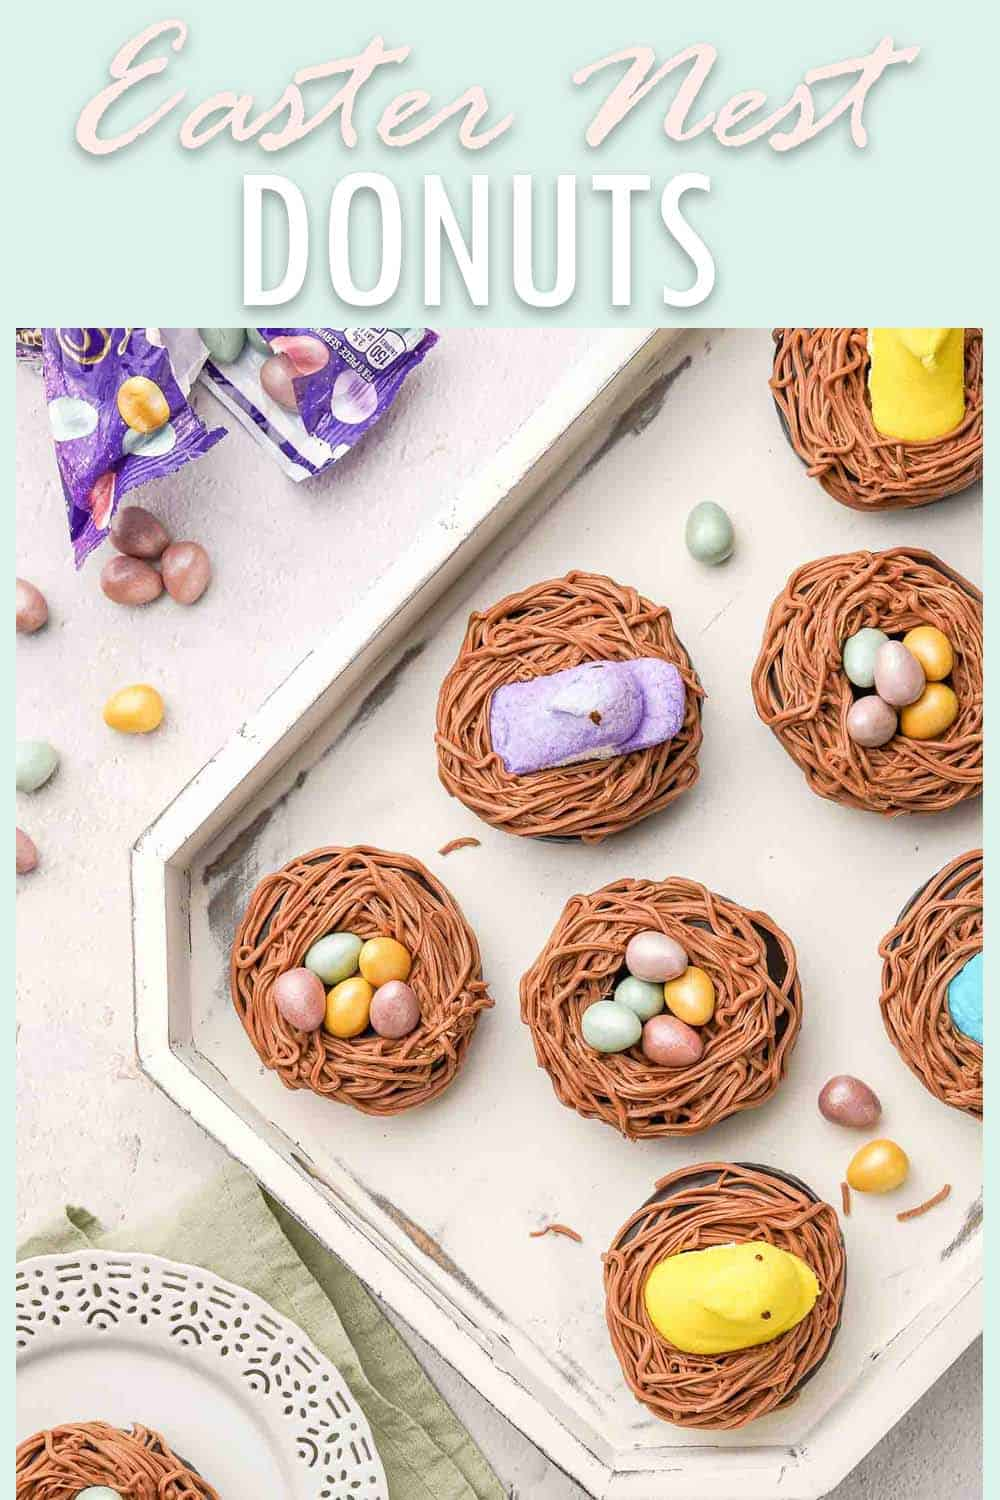 Easter Nest Donuts in Tray with Text Overlay